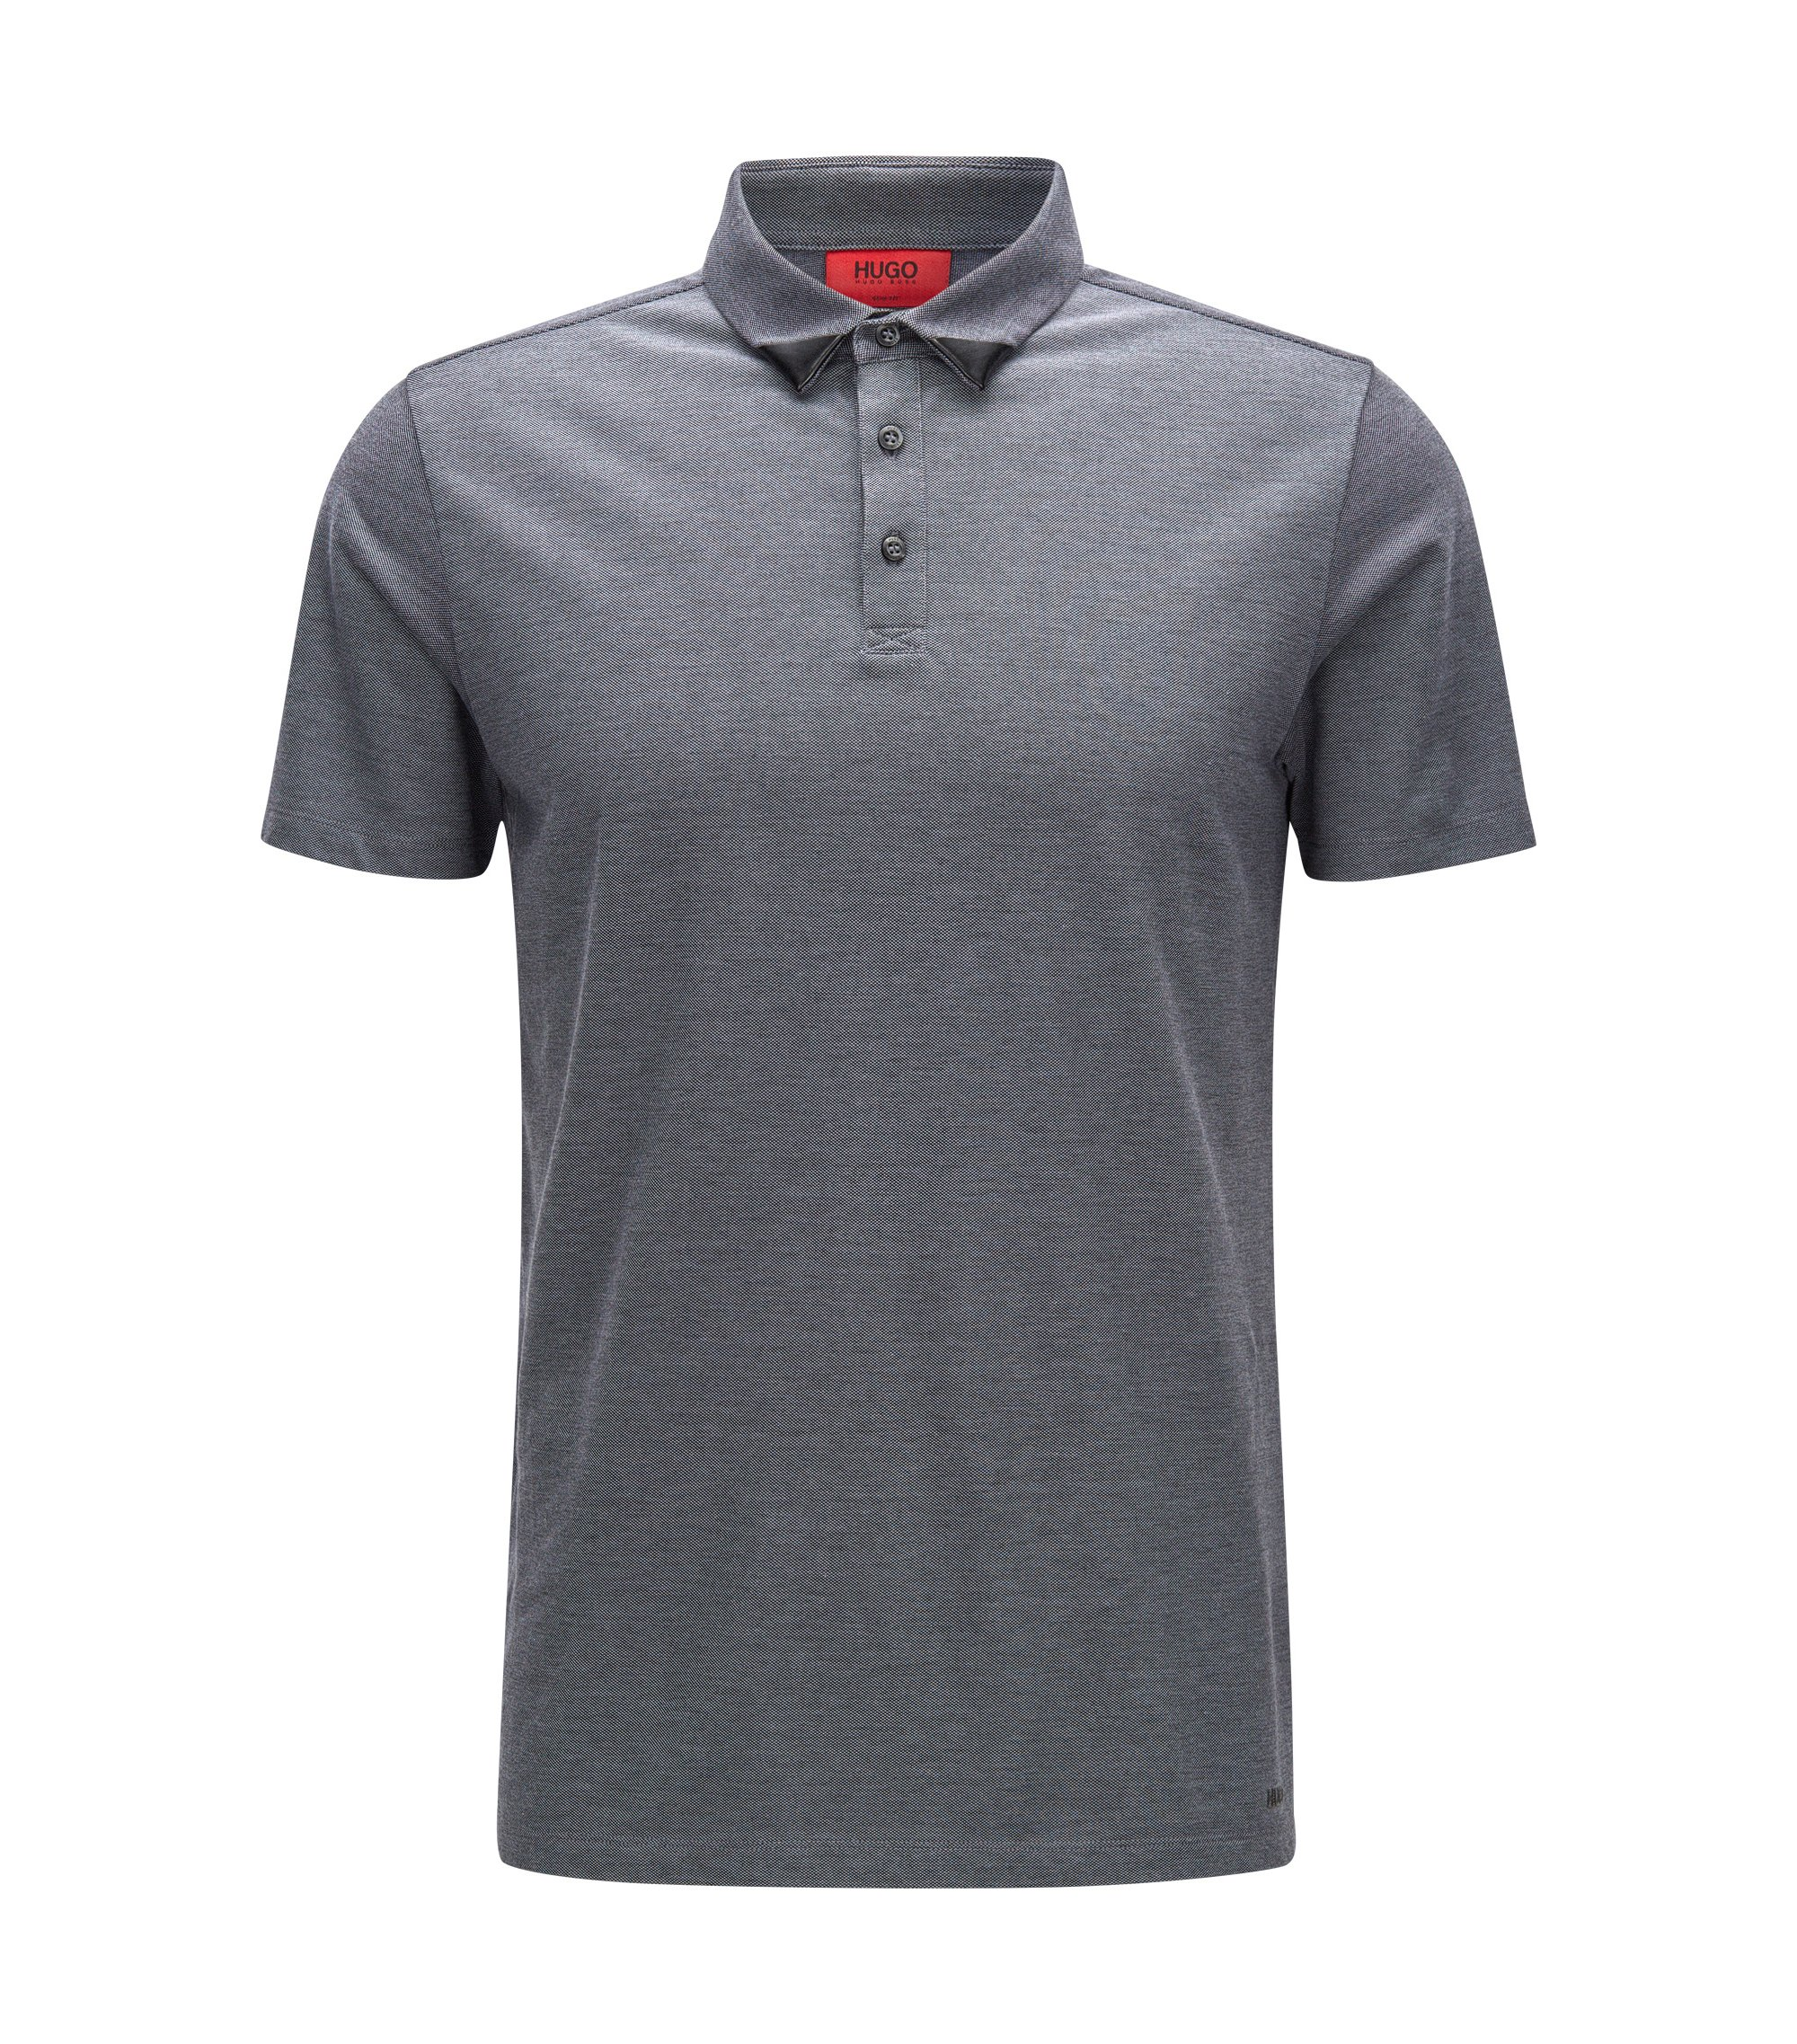 Piqué Cotton Polo Shirt, Slim Fit | Deffries, Black